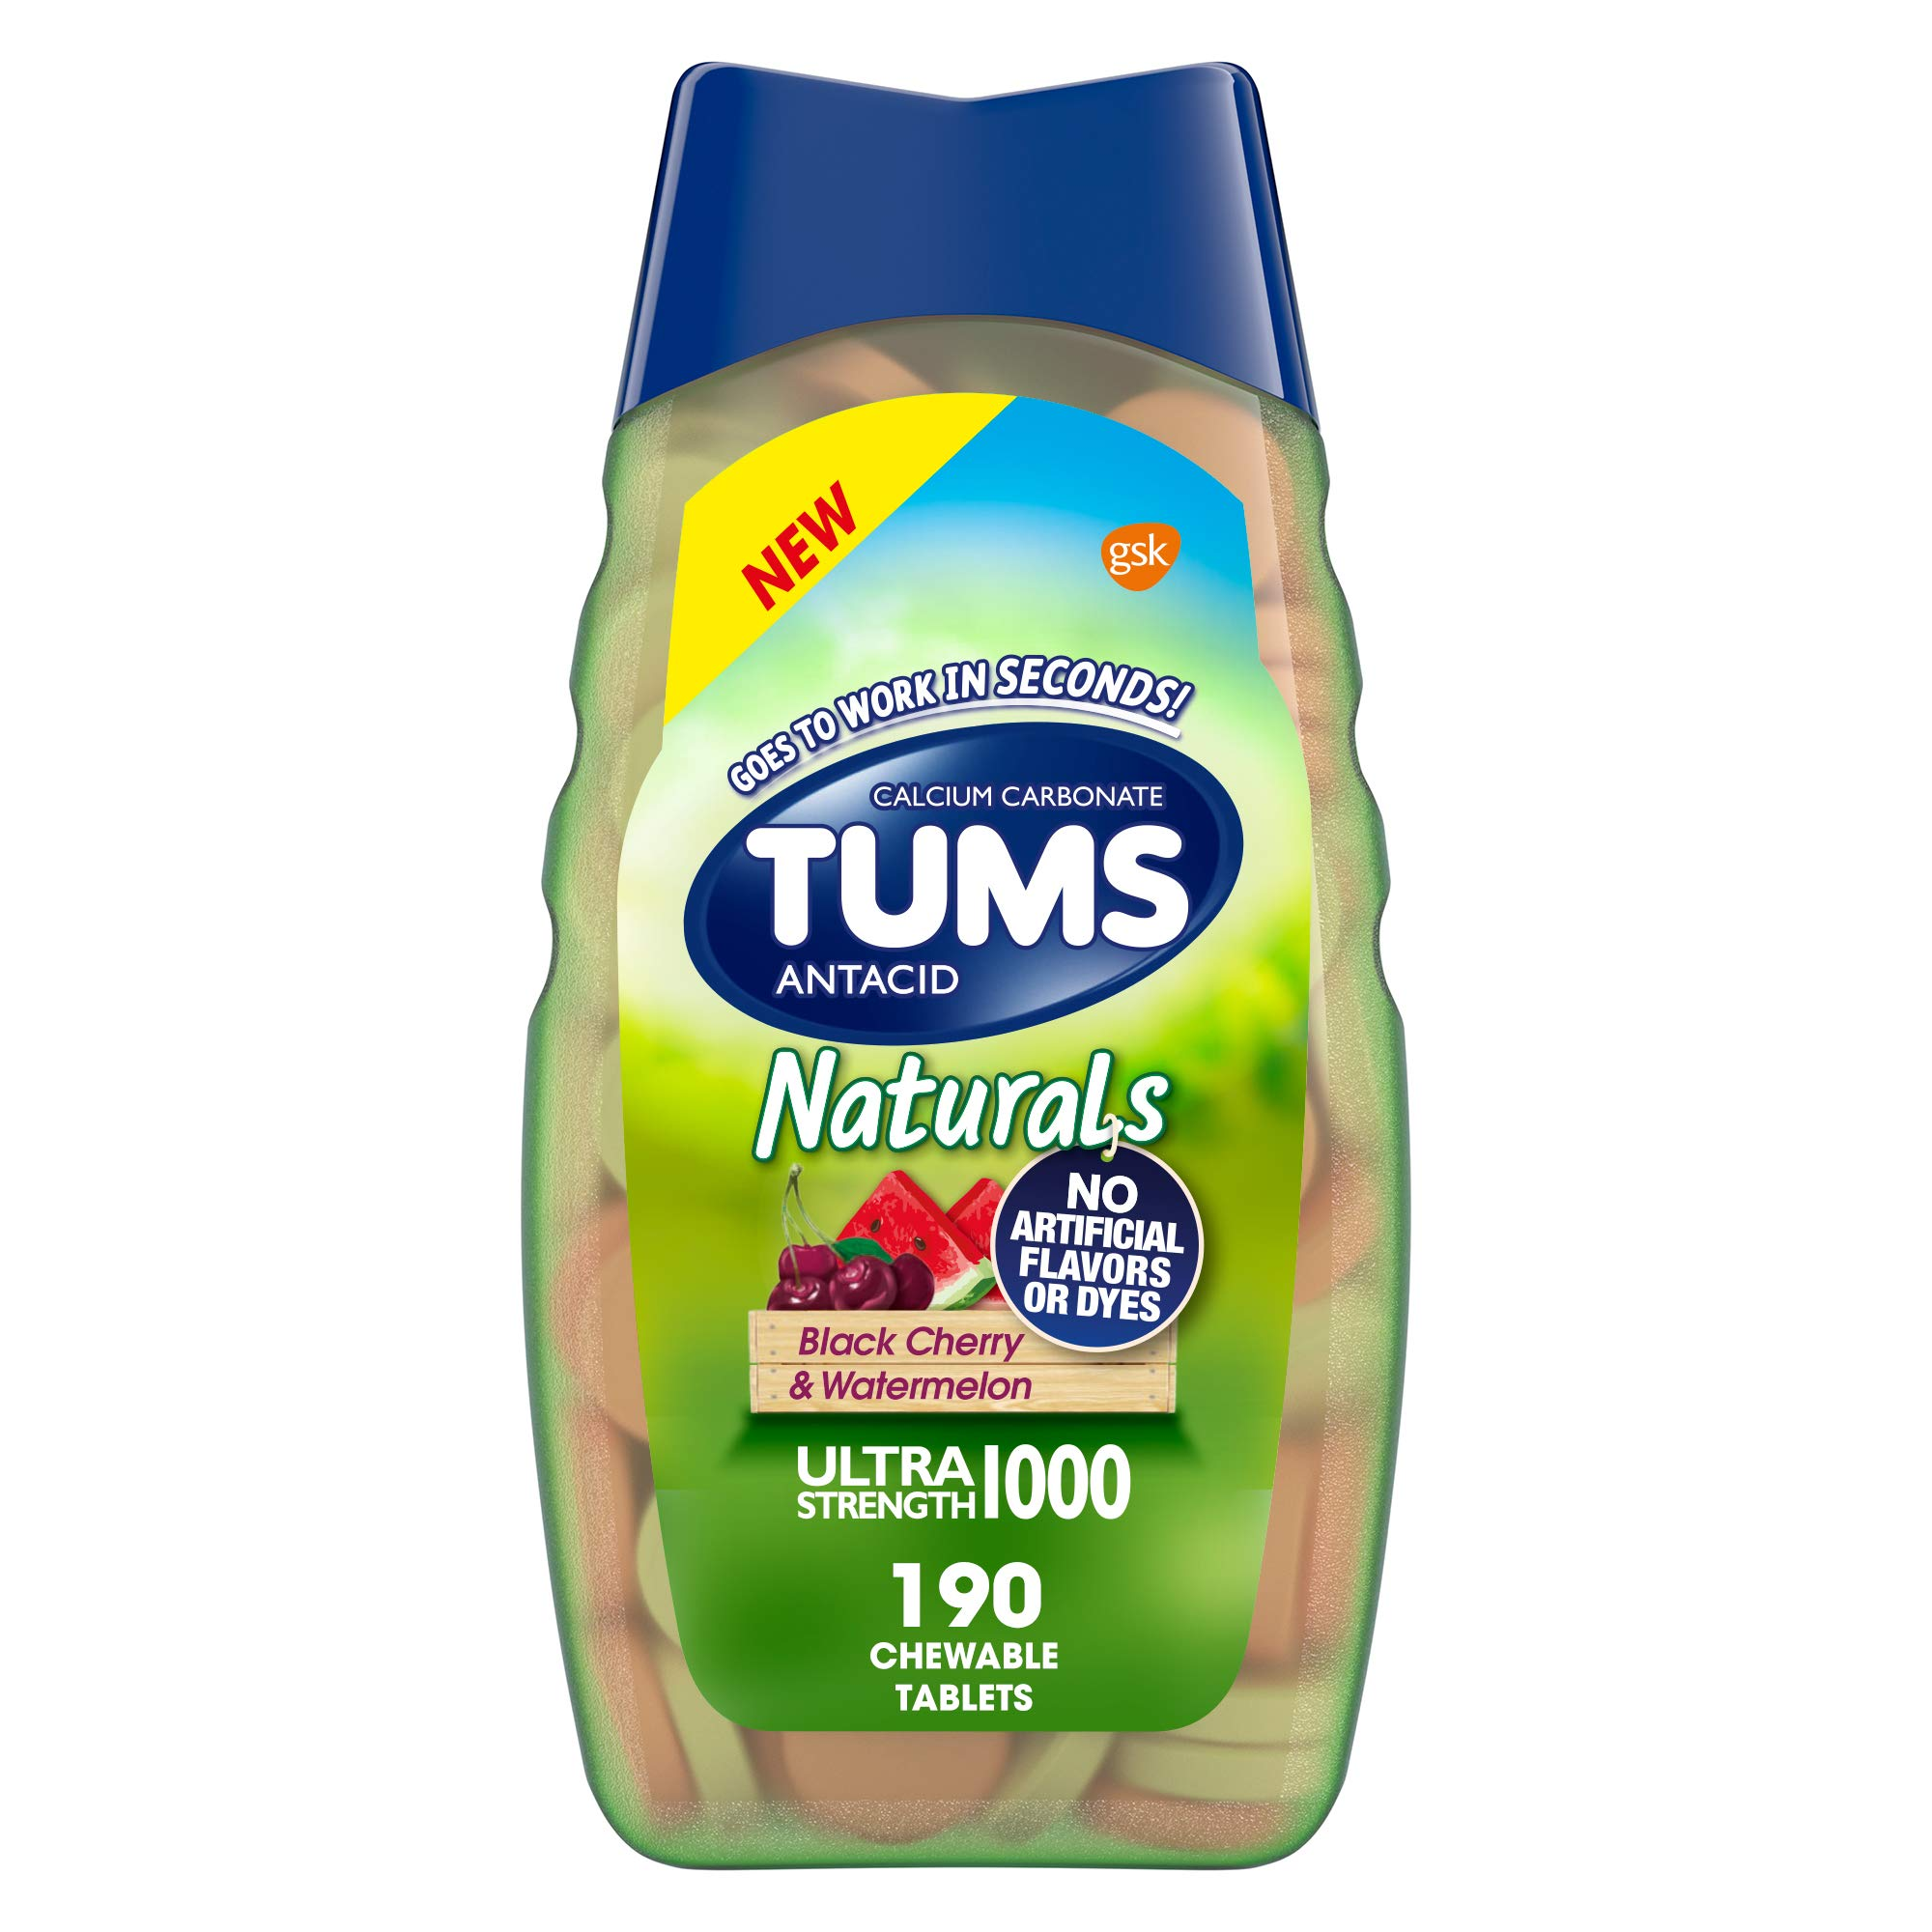 TUMS Naturals Ultra Strength Antacid Chews for Heartburn Relief, Black Cherry & Watermelon - 190 Count